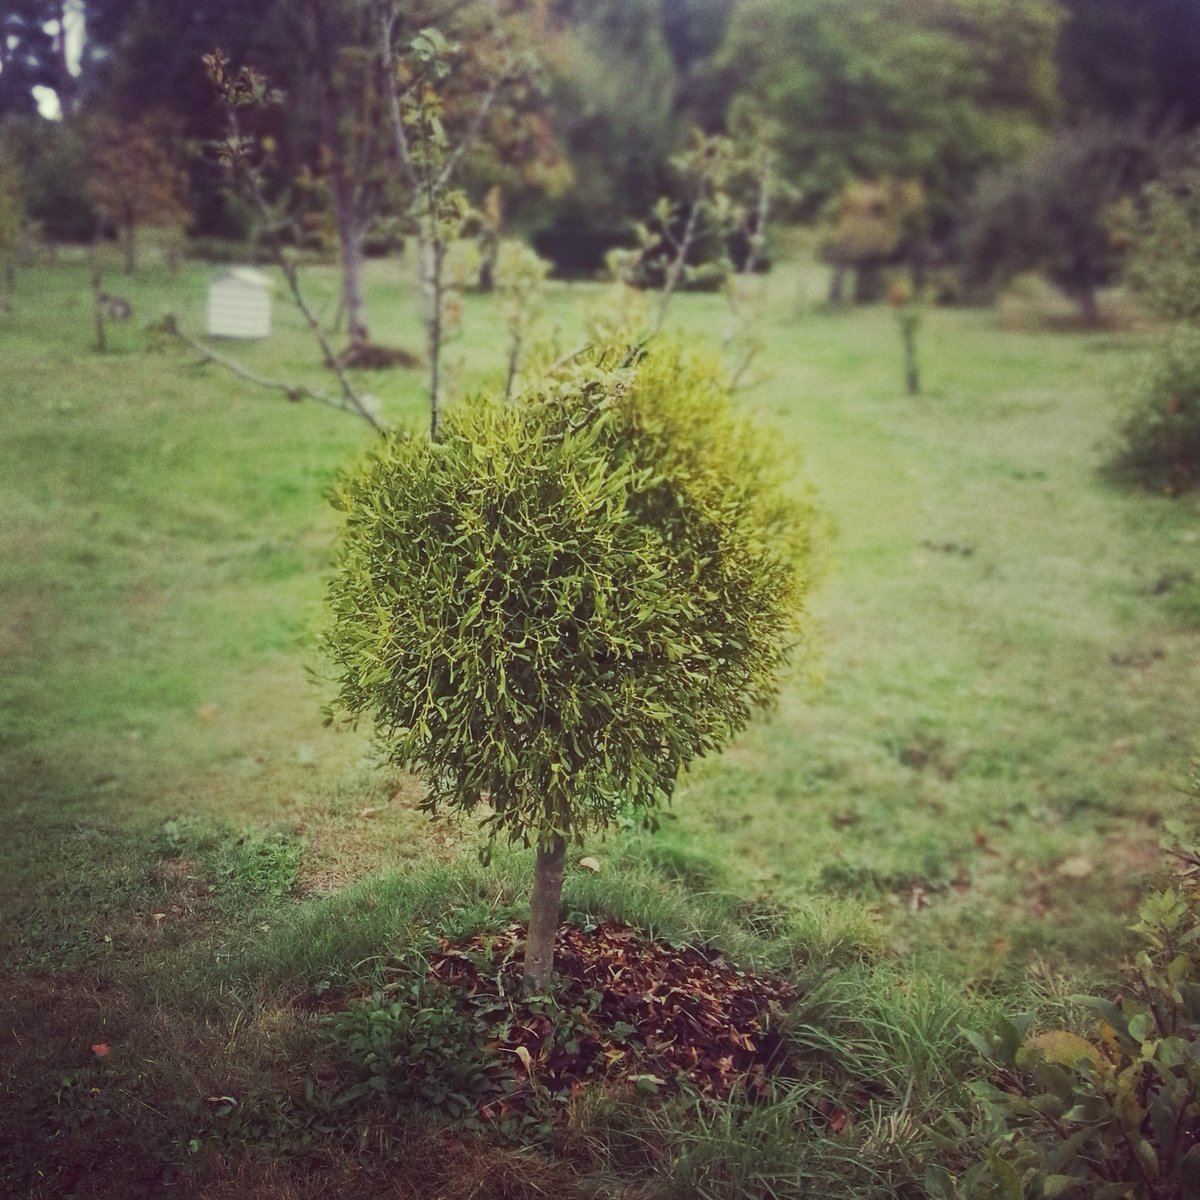 Huuuge #mistletoe, tiny #apple tree! Worth going to #HeverCastleGardens just to see this 😊 #gardening #horticulture https://t.co/lk5K8KhlQP